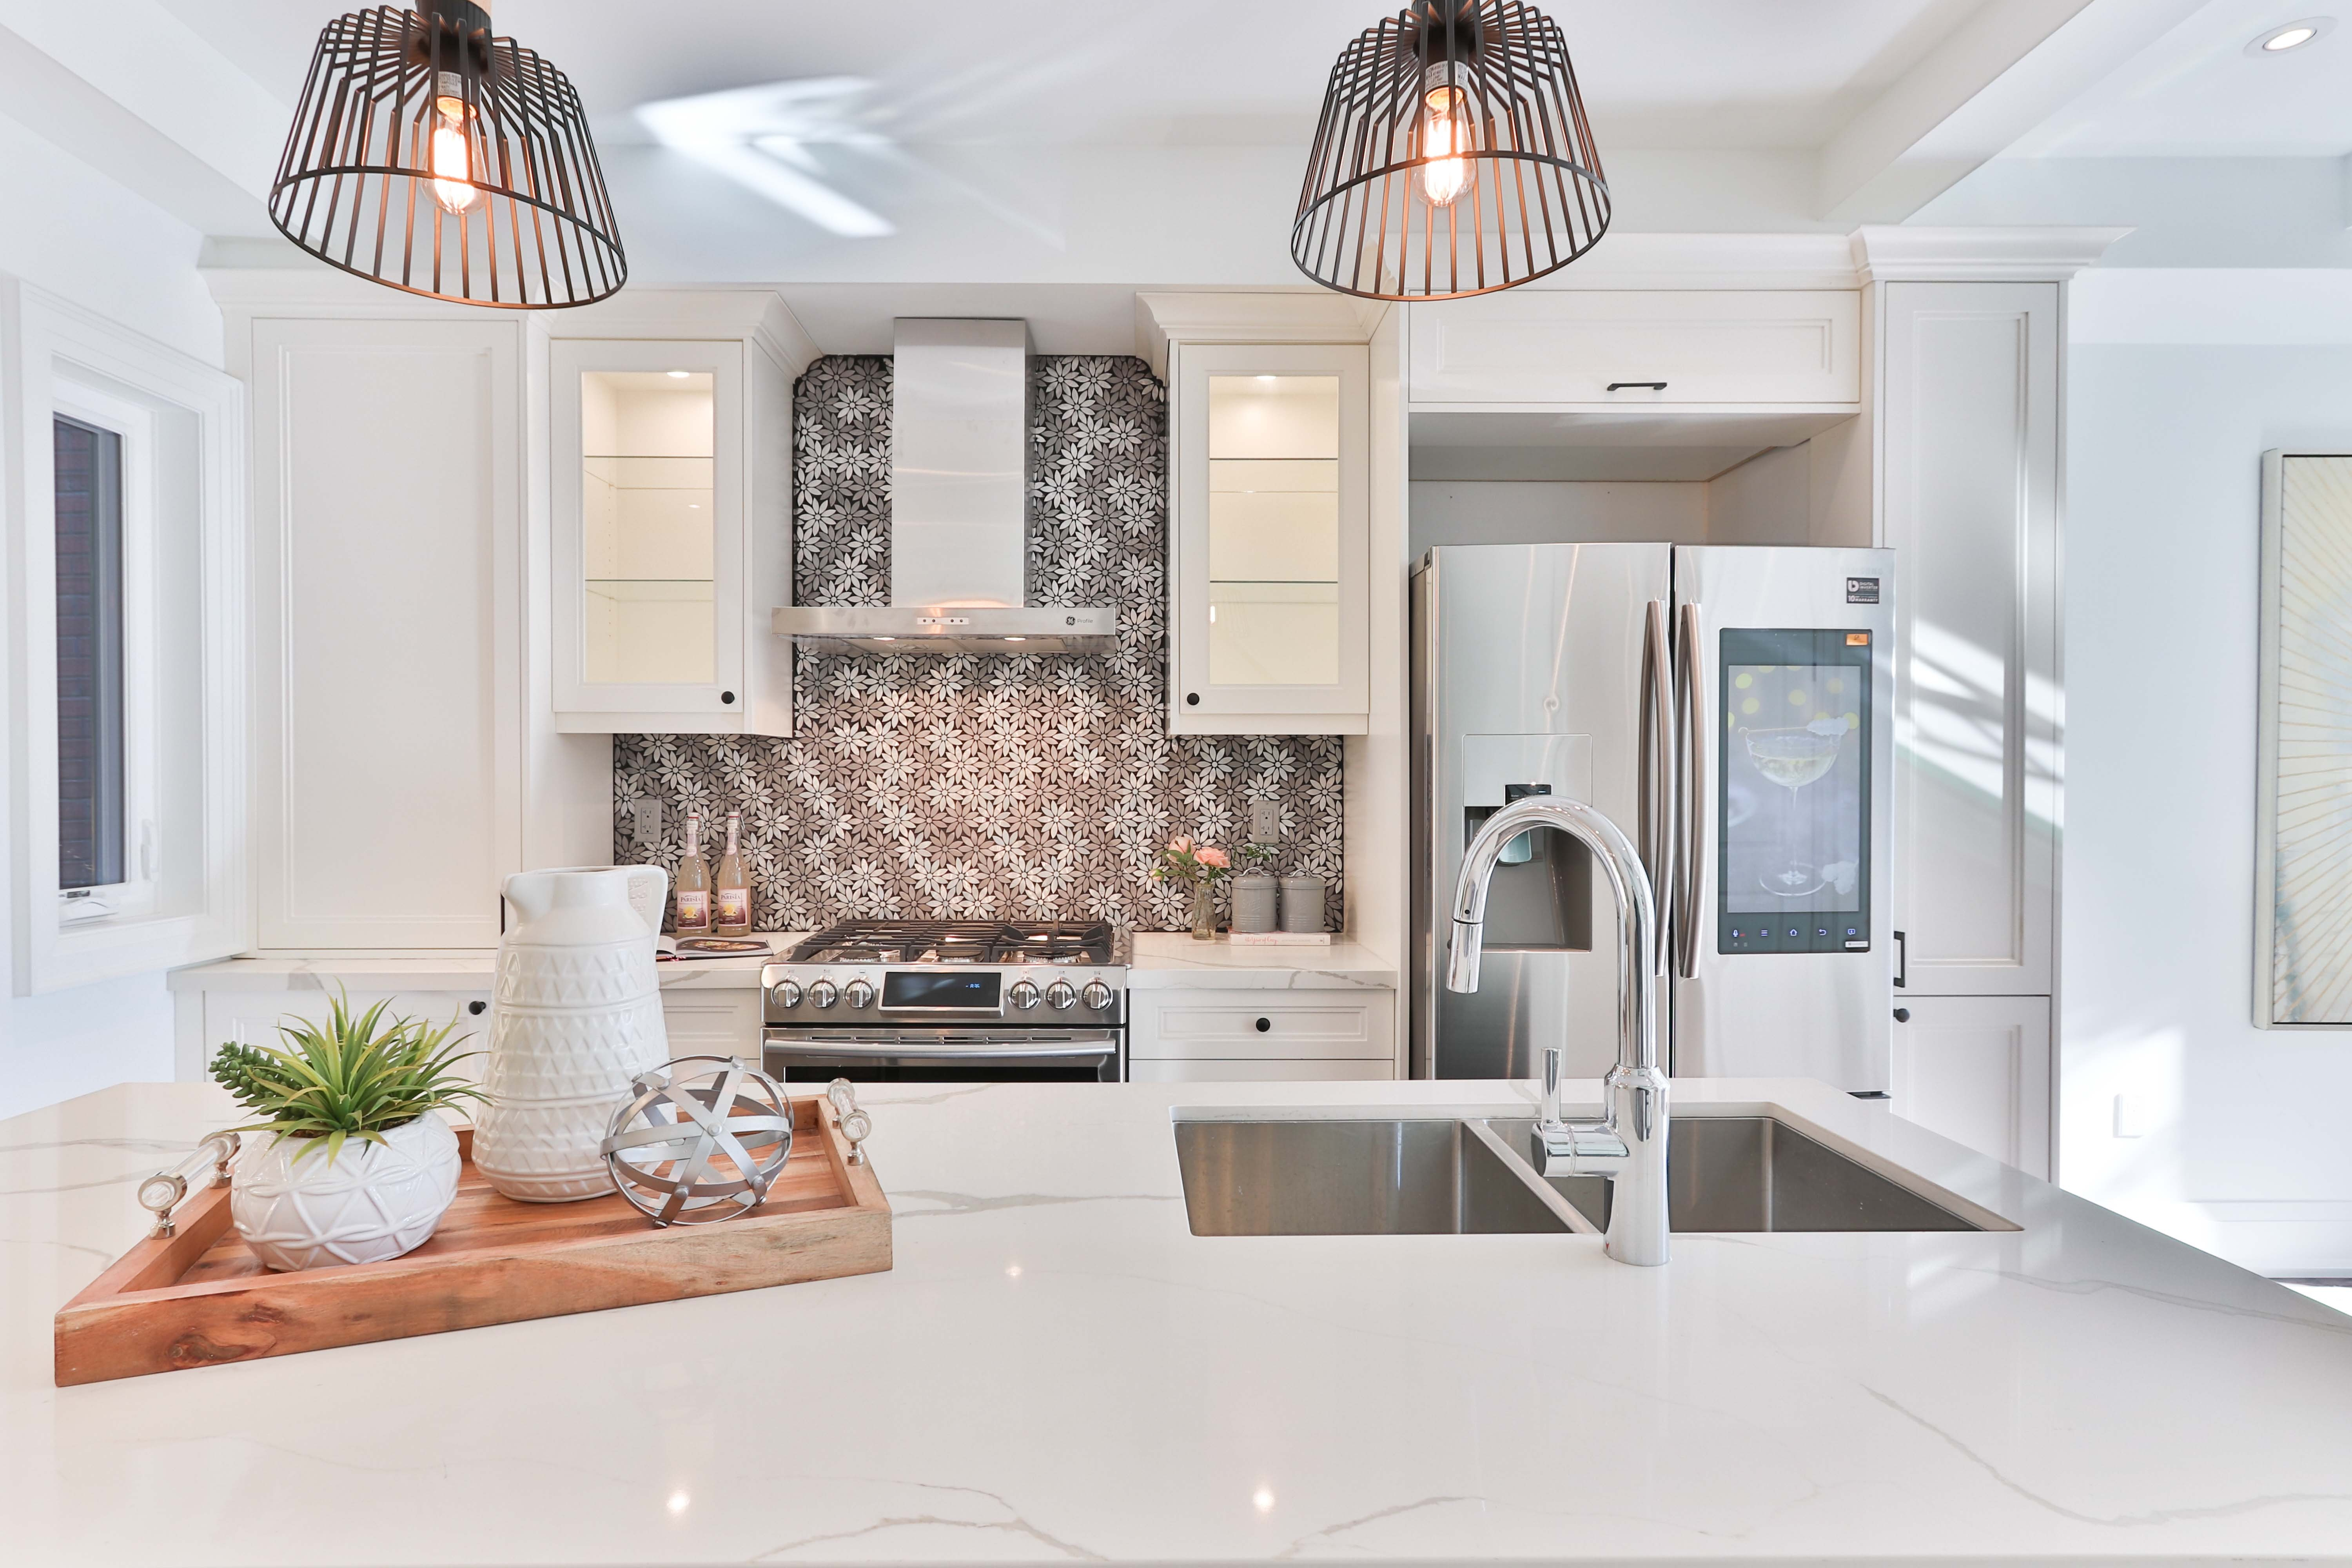 Interior Design Tips From the Pro: Lesley Glotzl